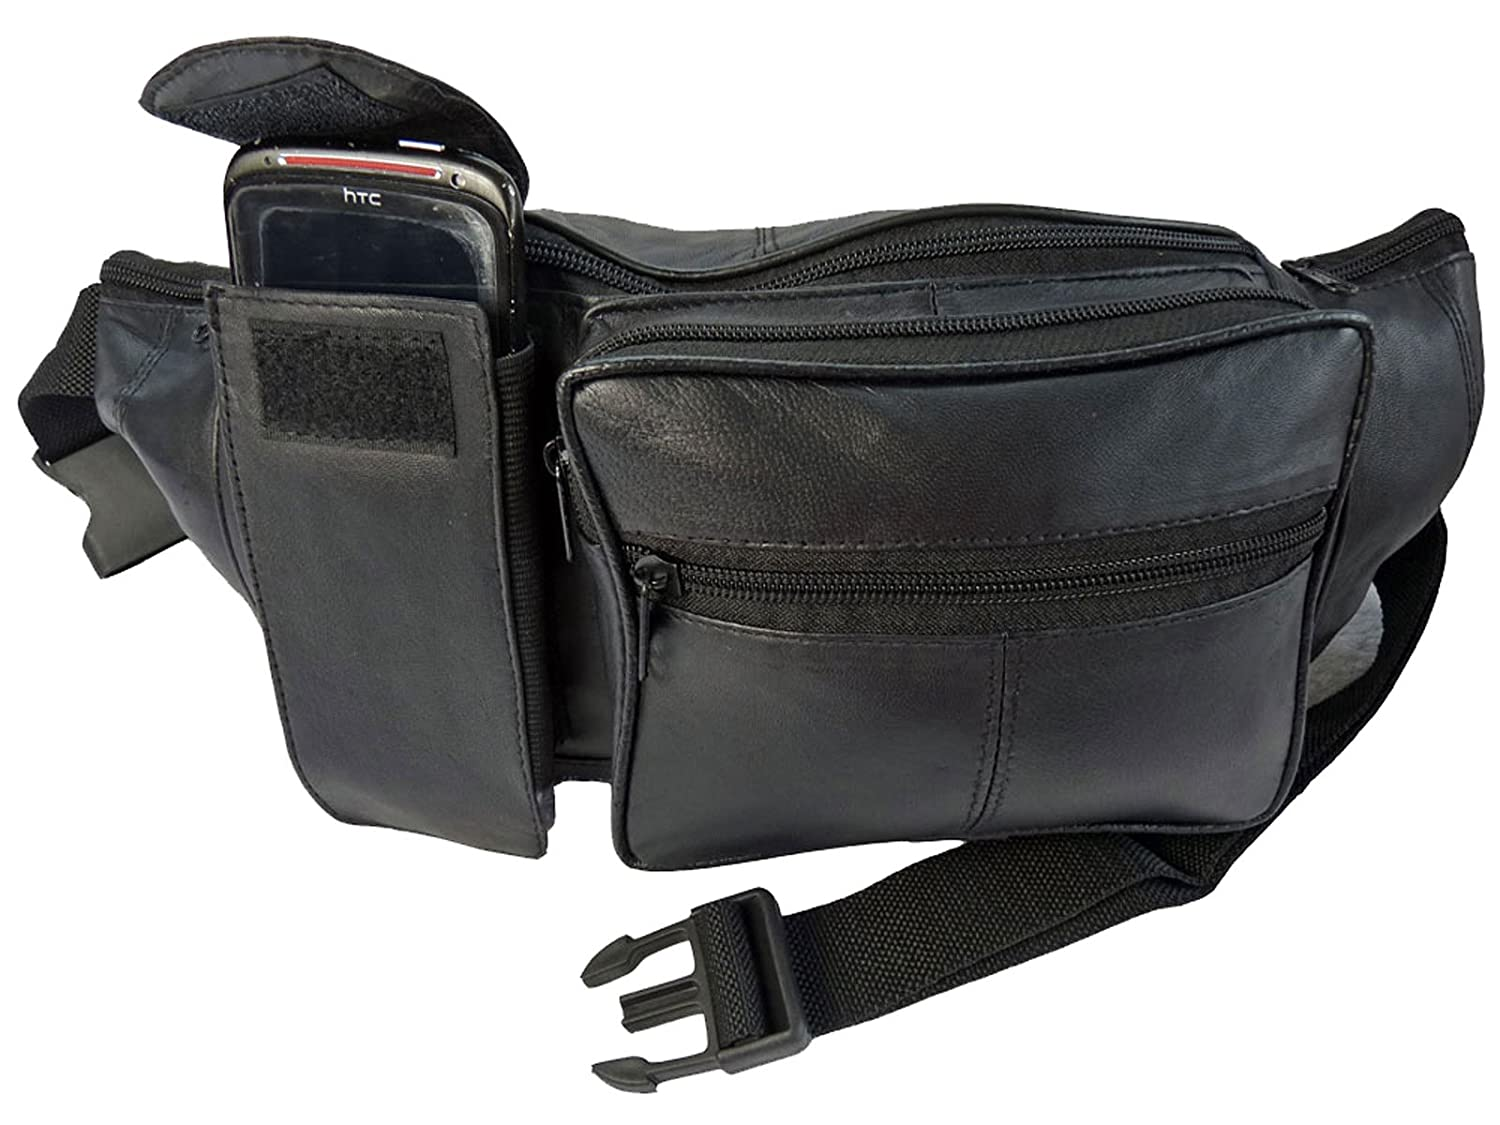 Extra Large Leather Bumbag - Soft Real Leather Bum Bag - 34 to 52 Inch Size Waist - 6 Zipped Pockets - Elasticated Smart Phone Pocket - Plain Black - Ideal For Holidays, Travel and Festivals - RL276 RL276K